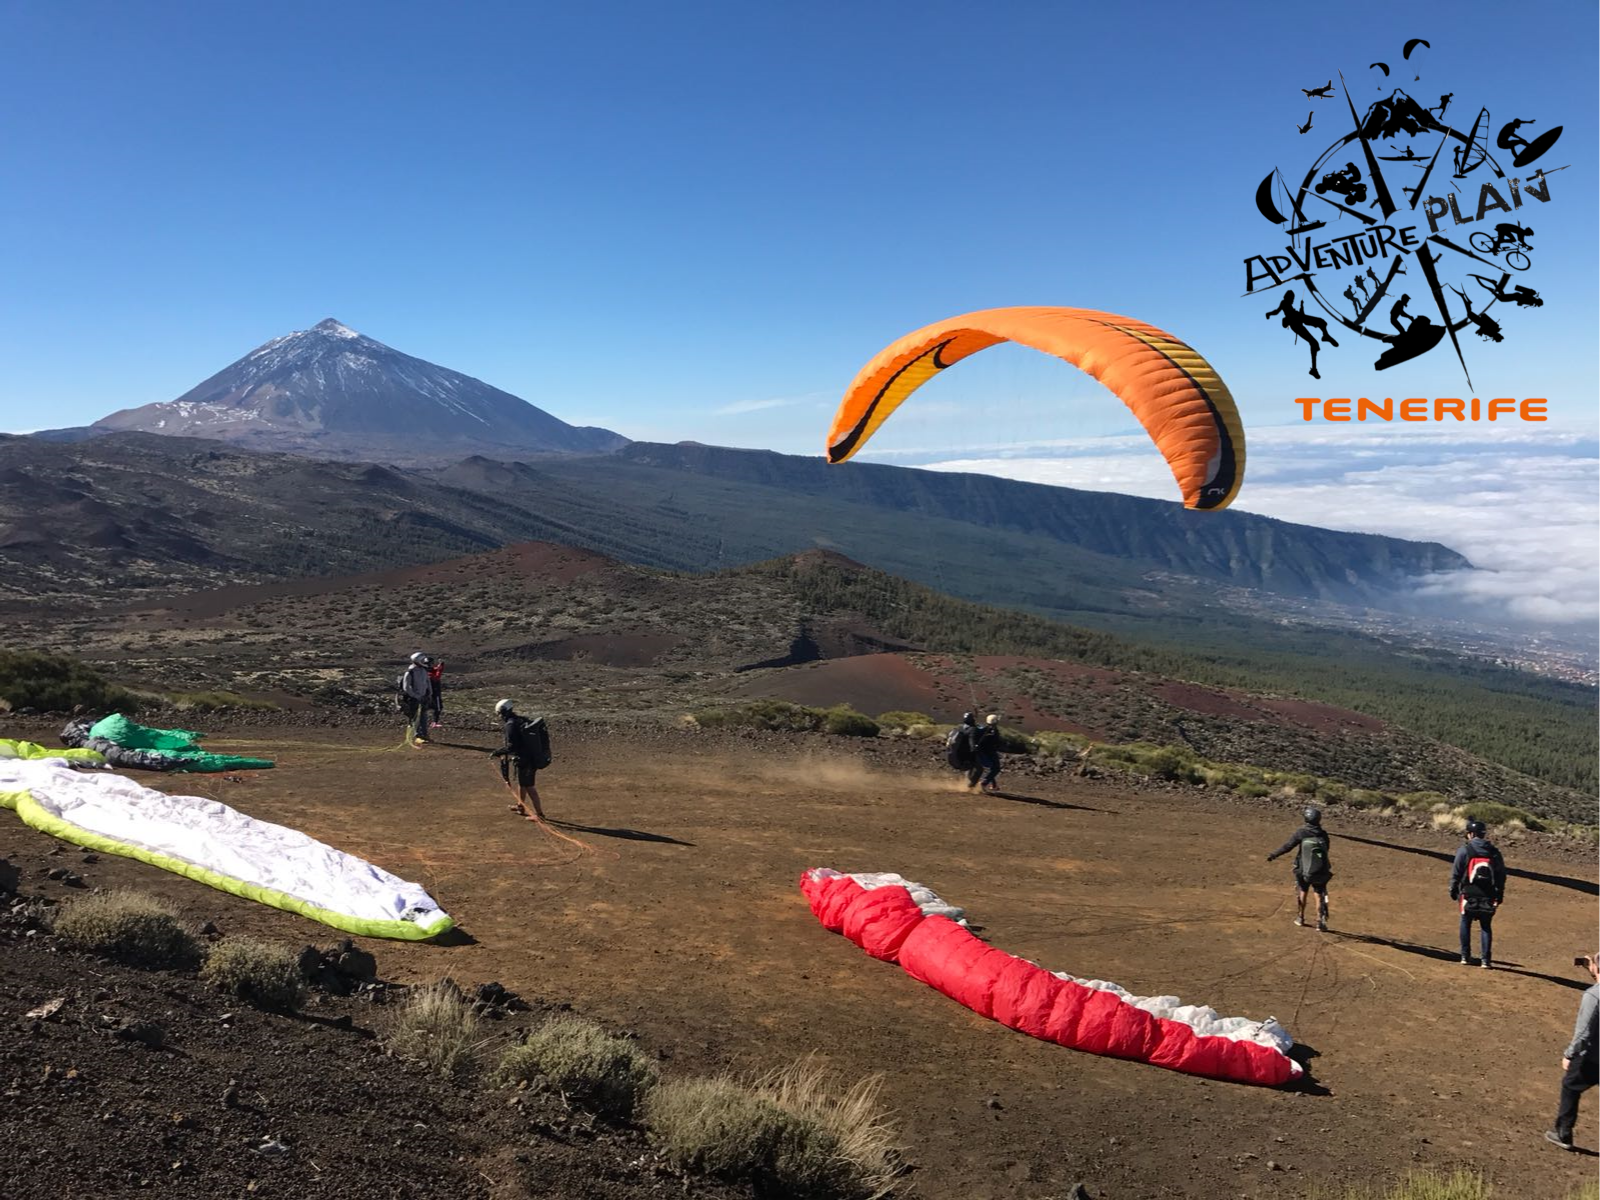 ADVENTURE PLAN TENERIFE, ADVENTURE AWAITS.. PARAGLIDING TANDEM TENERIFE, SKY DIVING TENERIFE, HIKE & FLY EL TEIDE, TENERIFE, KAYAK TENERIFE, HORSES TENERIFE, BIKING TENERIFE, BUGGYE TENERIFE, PARAMOTOR TENERIFE, TREKKING TENERIFE, DOLPHING AND WHALES TENERIFE, CLIMBING TENERIFE, SURF TENERIFE, PARAGLIDING LESSONS TENERIFE, SCUBA DIVING TENERIFE, SAILING TENERIFE, QUADS TENERIFE, EL TEIDE BY NIGHT, KITE SURF TENERIFE, FISHING TENERIFE, HELICOPTER TOUR TENERIFE. PLAN YOUR ADVENTURE IN TENERIFE; ADVENTURE FOR FAMILY, ADVENTURE FOR KIDS TENERIFE, BACHELOR PARTY TENERIFE, FLY PARAGLIDING EL TEIDE, FLY PARAGLIDING EL TEIDE, VIP PARAGLIDING TENERIFE, PARAGLIDING LESSONS TENERIFE